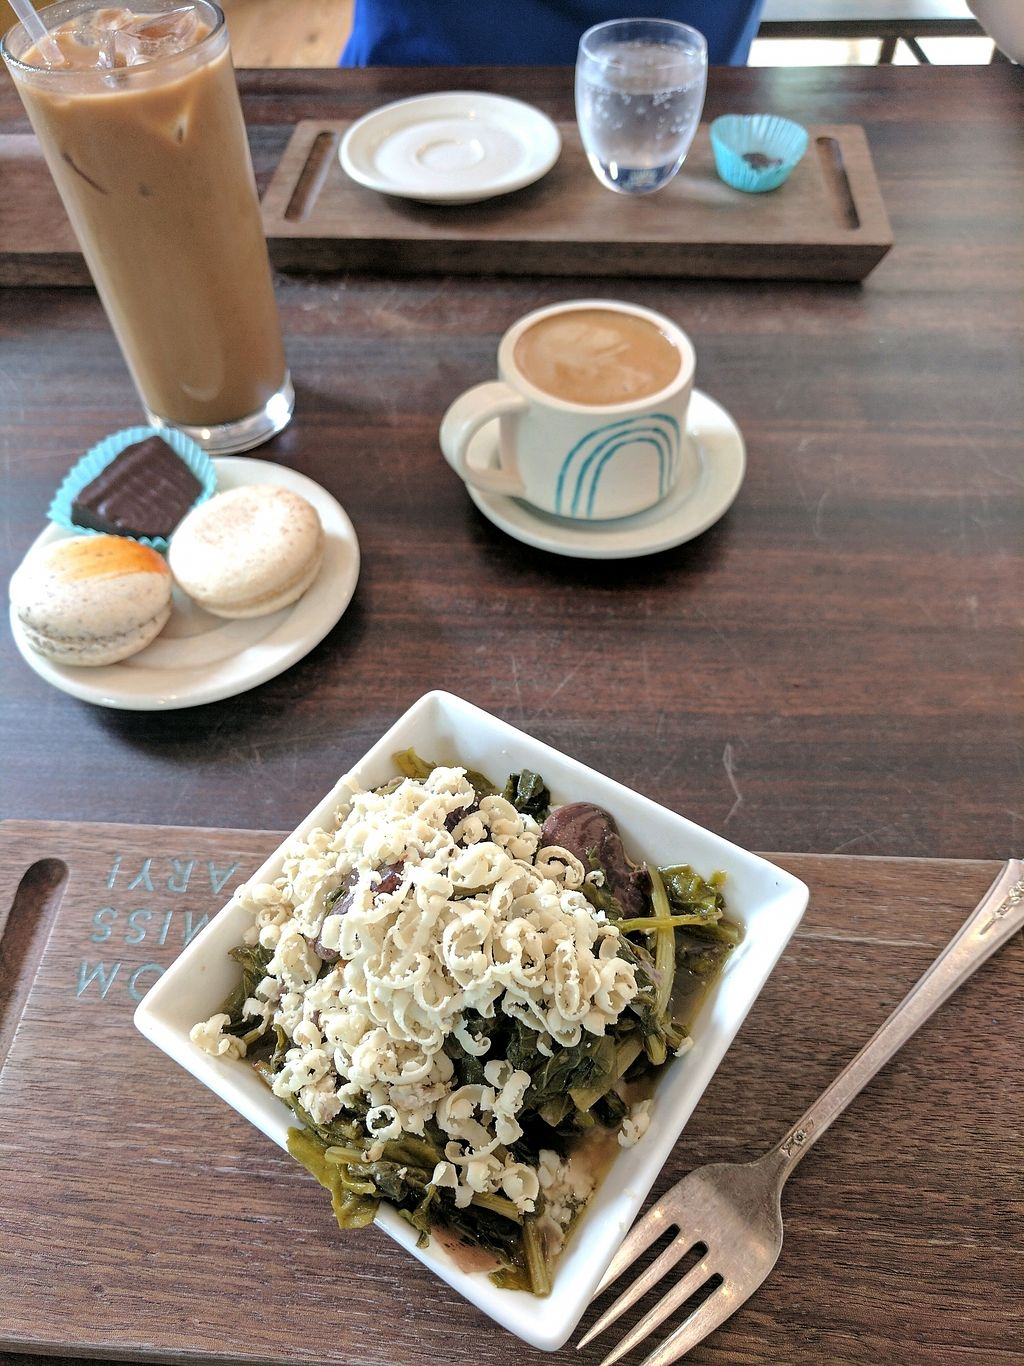 """Photo of Lagusta's Luscious Commissary  by <a href=""""/members/profile/GiselleBenitez"""">GiselleBenitez</a> <br/>beans and greens, iced chai latte, macaroons and chocolate! <br/> December 9, 2017  - <a href='/contact/abuse/image/76064/333643'>Report</a>"""